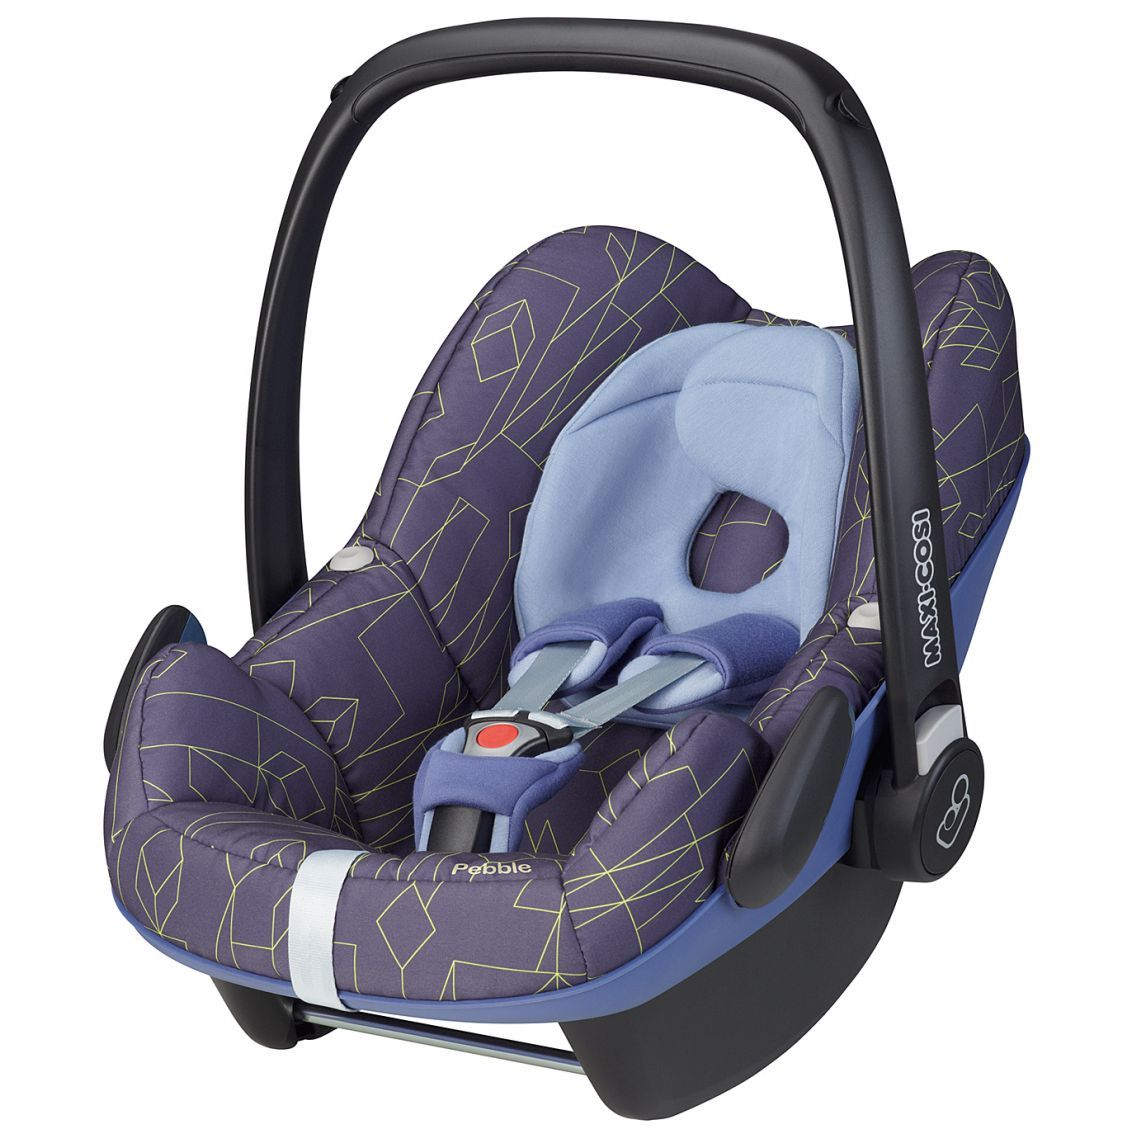 Graco Babyschale Adapter Maxi Cosi Pebble In Graphic Purple Babies 3 No I Am Not